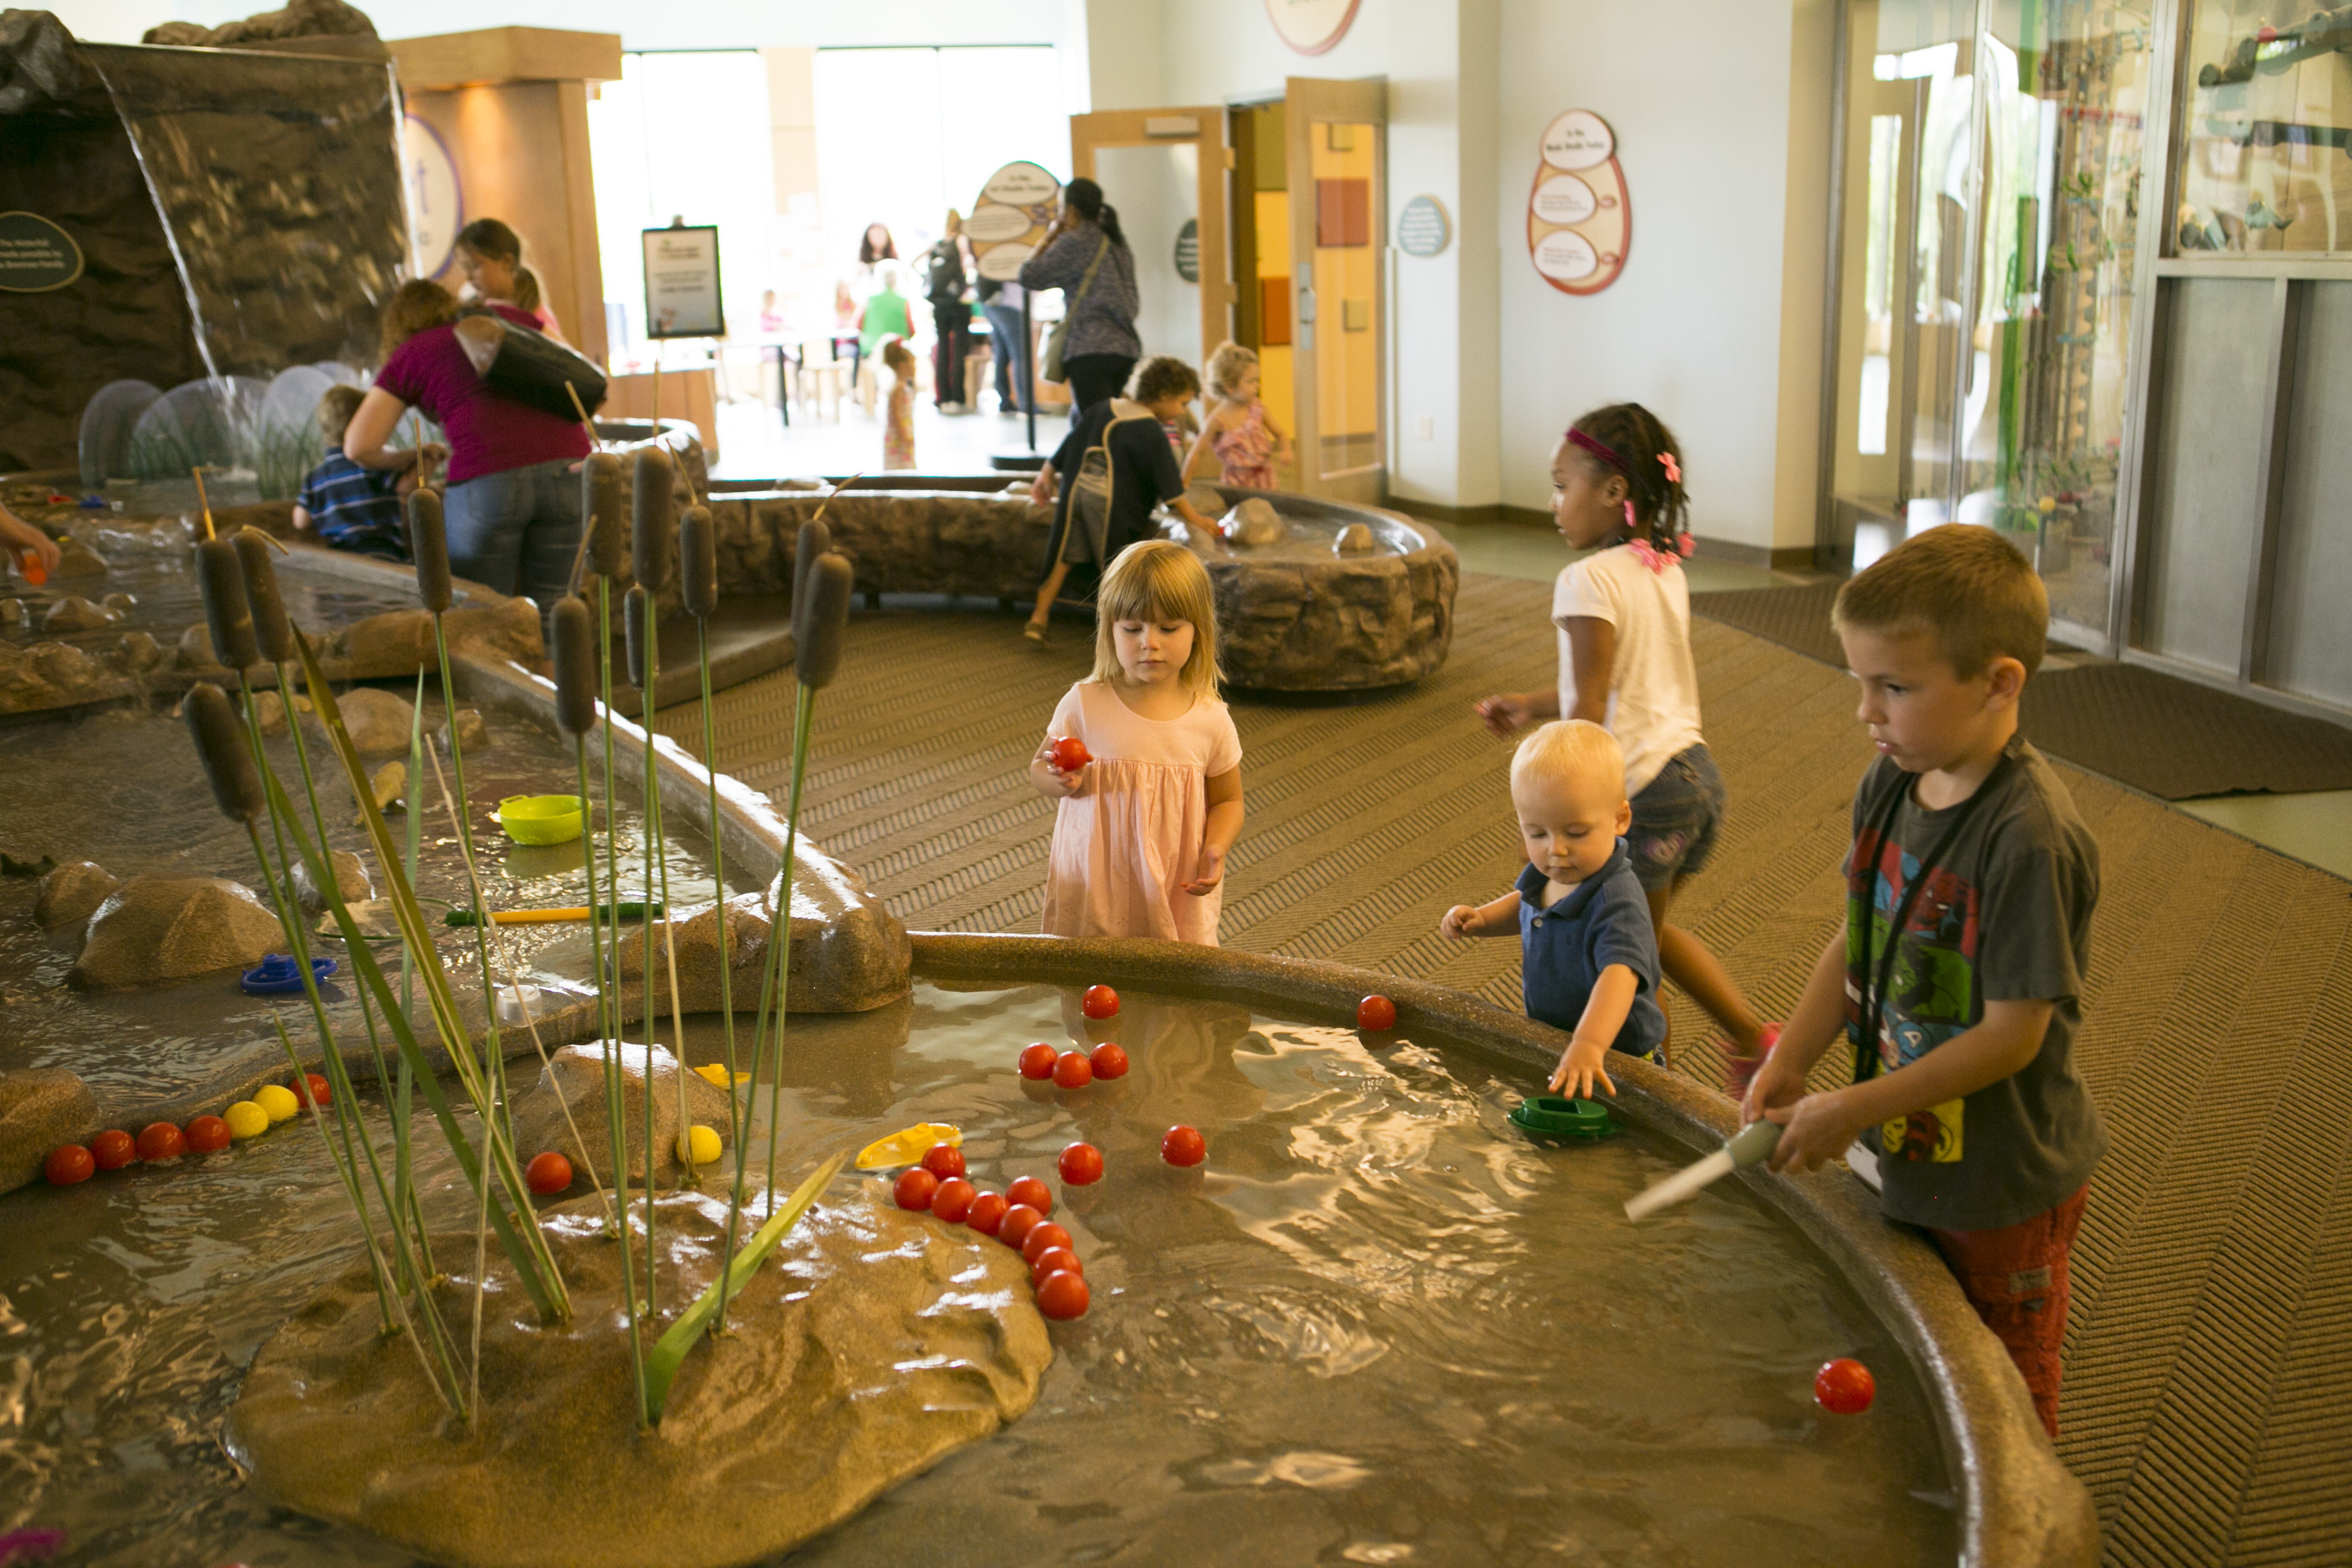 Indianpolis_Childrens_Museum-001_19